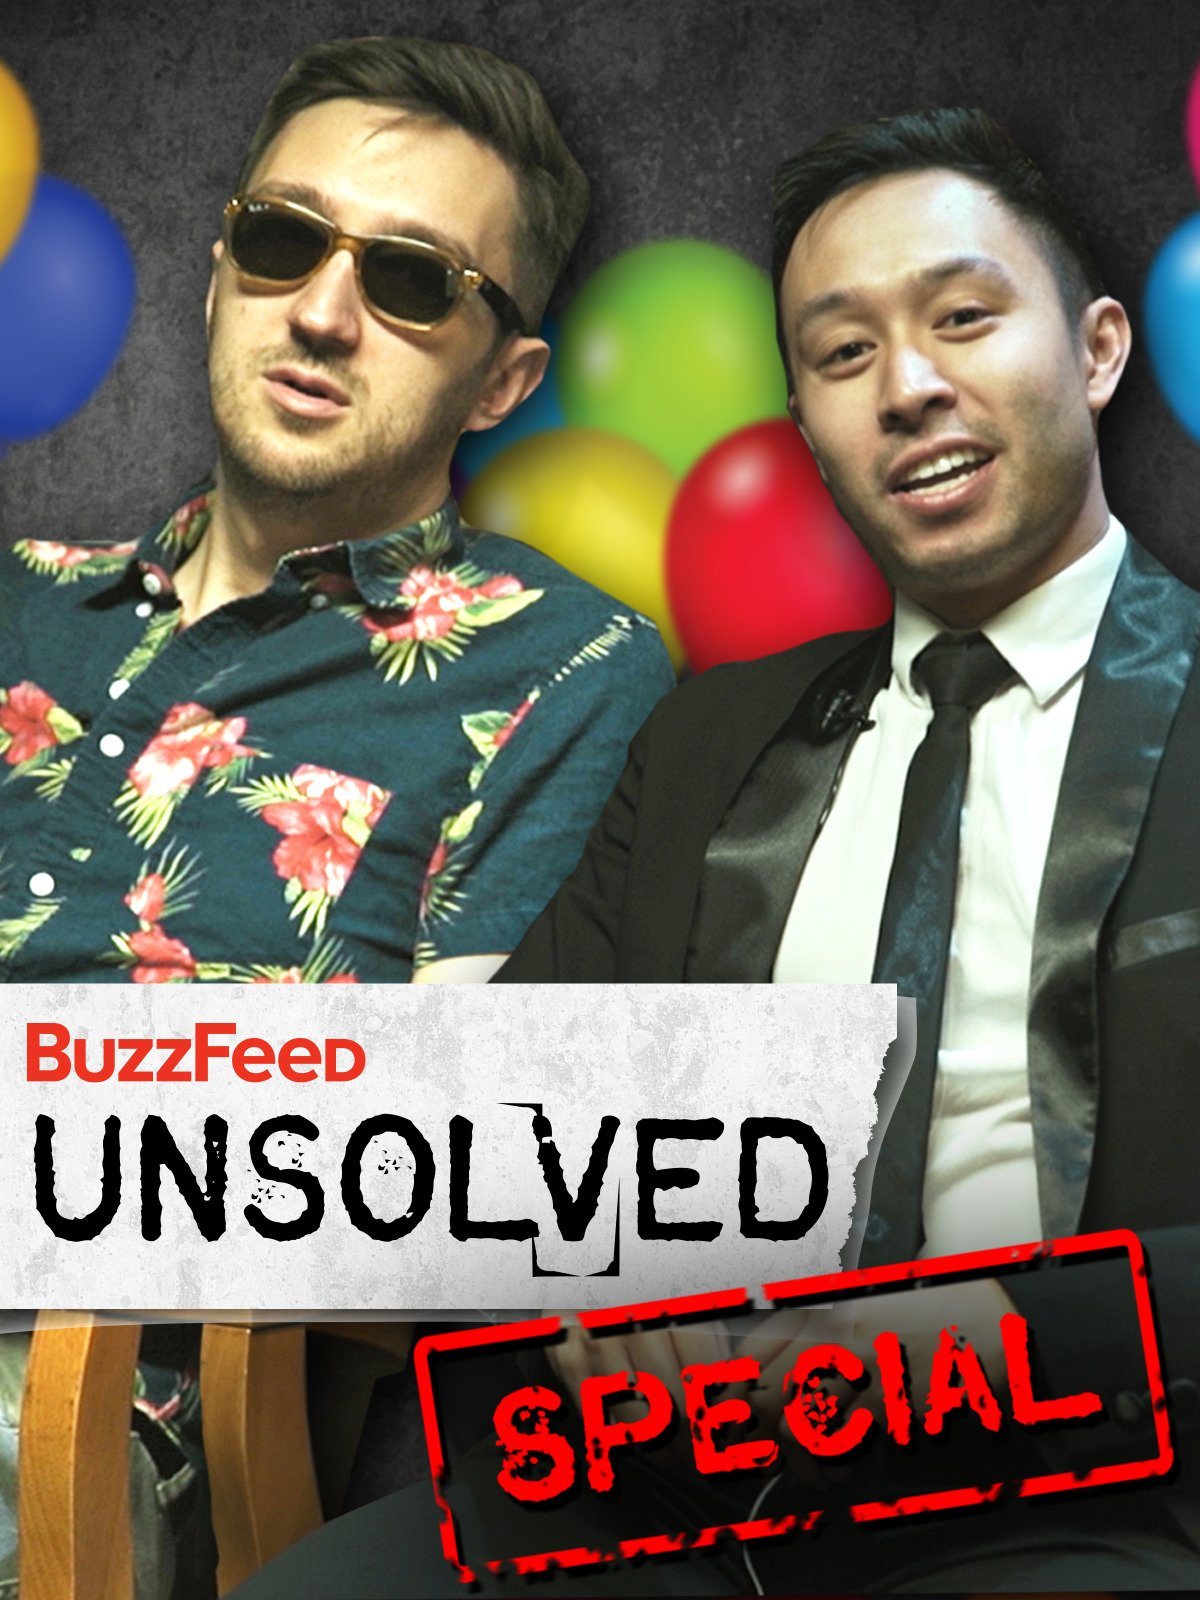 BuzzFeed Unsolved Almost 70th Episode Retrospective